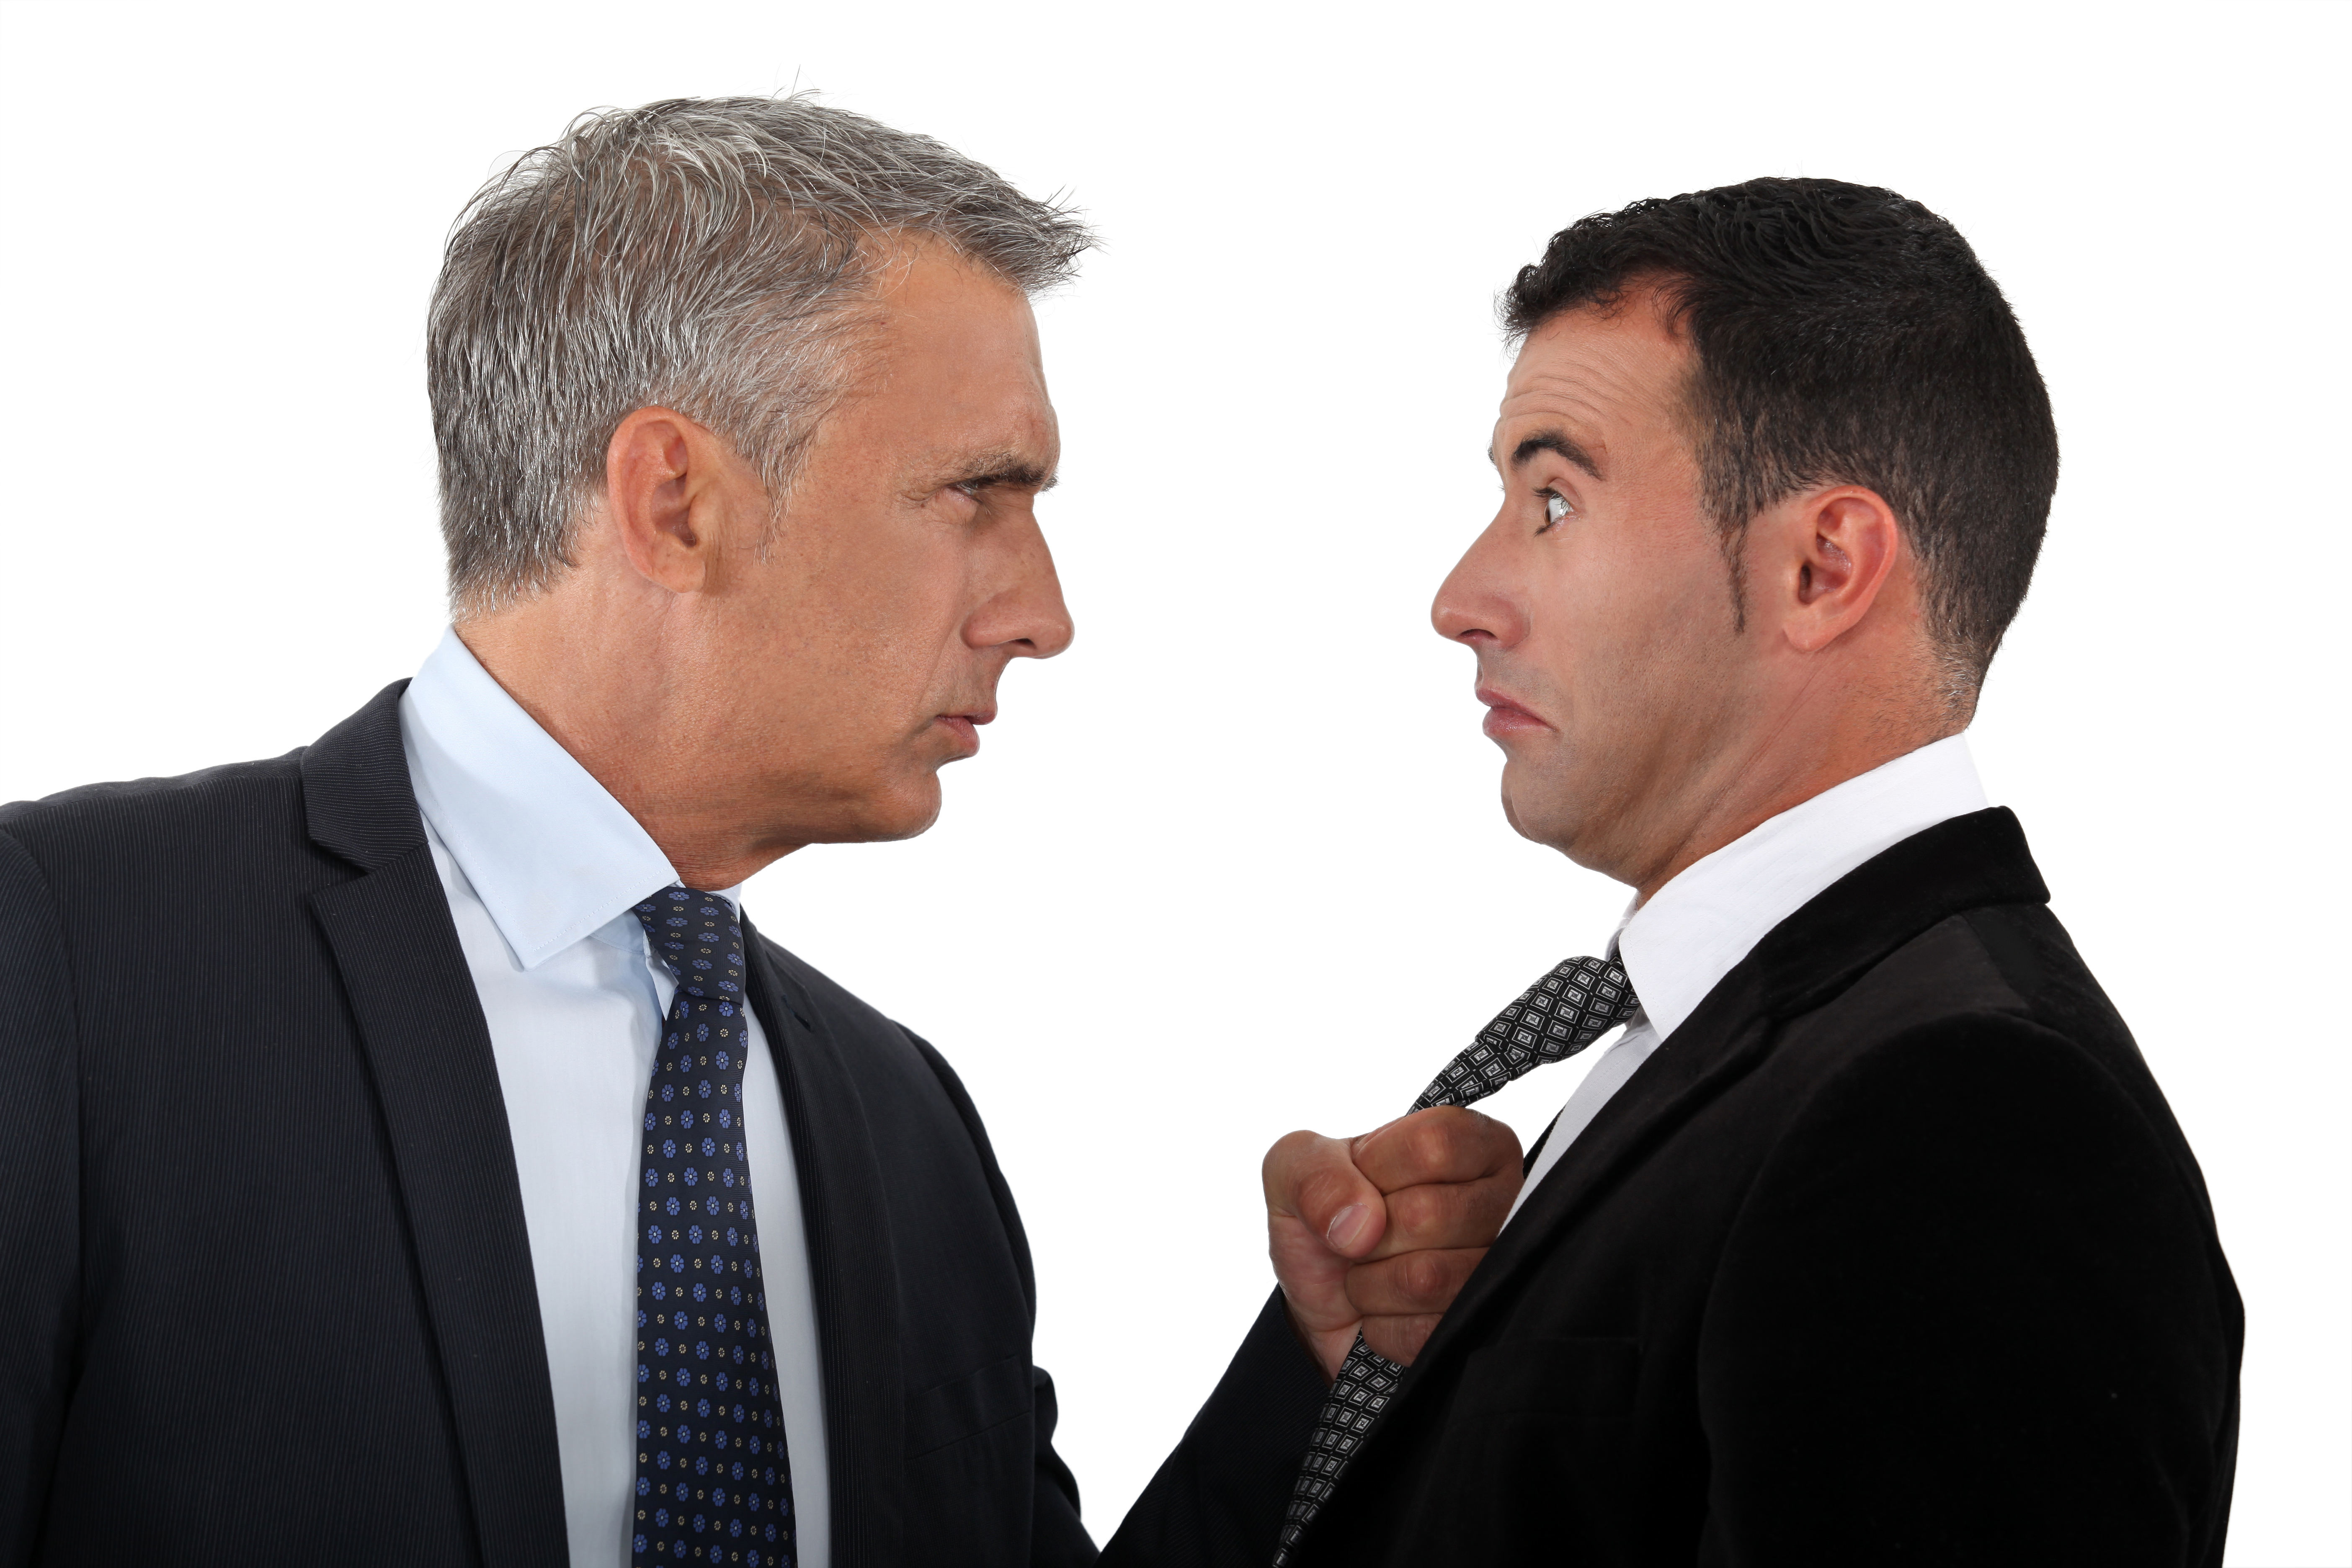 CoPressureImpactPartnership2 men facing each other with one grabbing the other by the tie - Company Pressures and the Impact on Business Partnerships